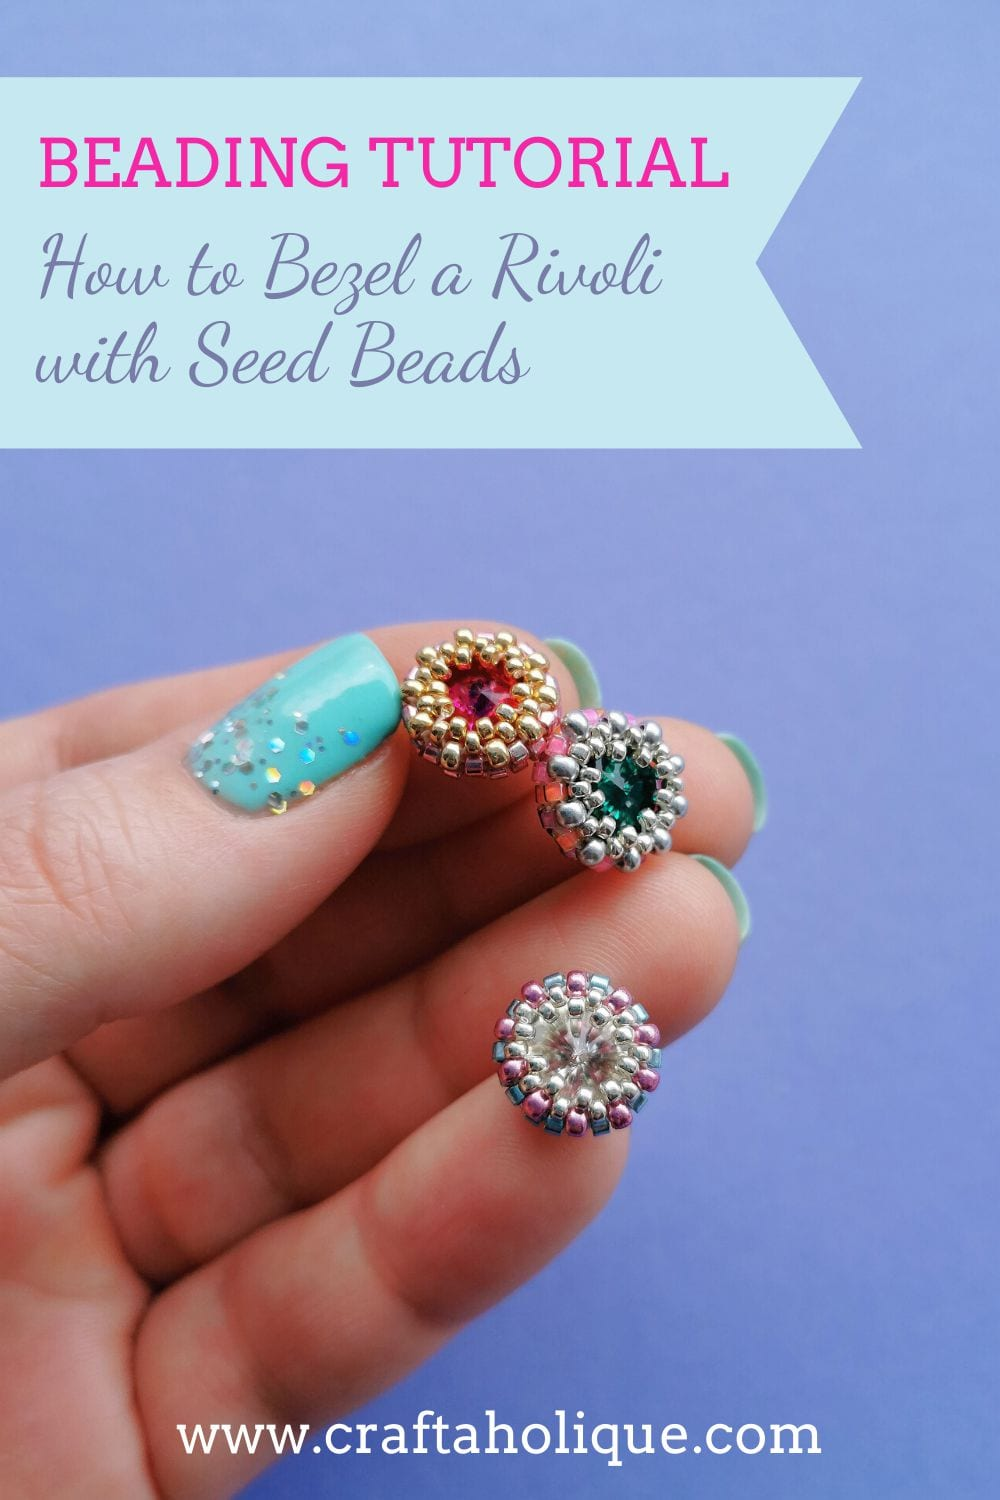 A step by step tutorial on how to bezel set a crystal rivoli using Miyuki Delica seed beads. Turn these into earrings, rings, pendants or bracelet components!